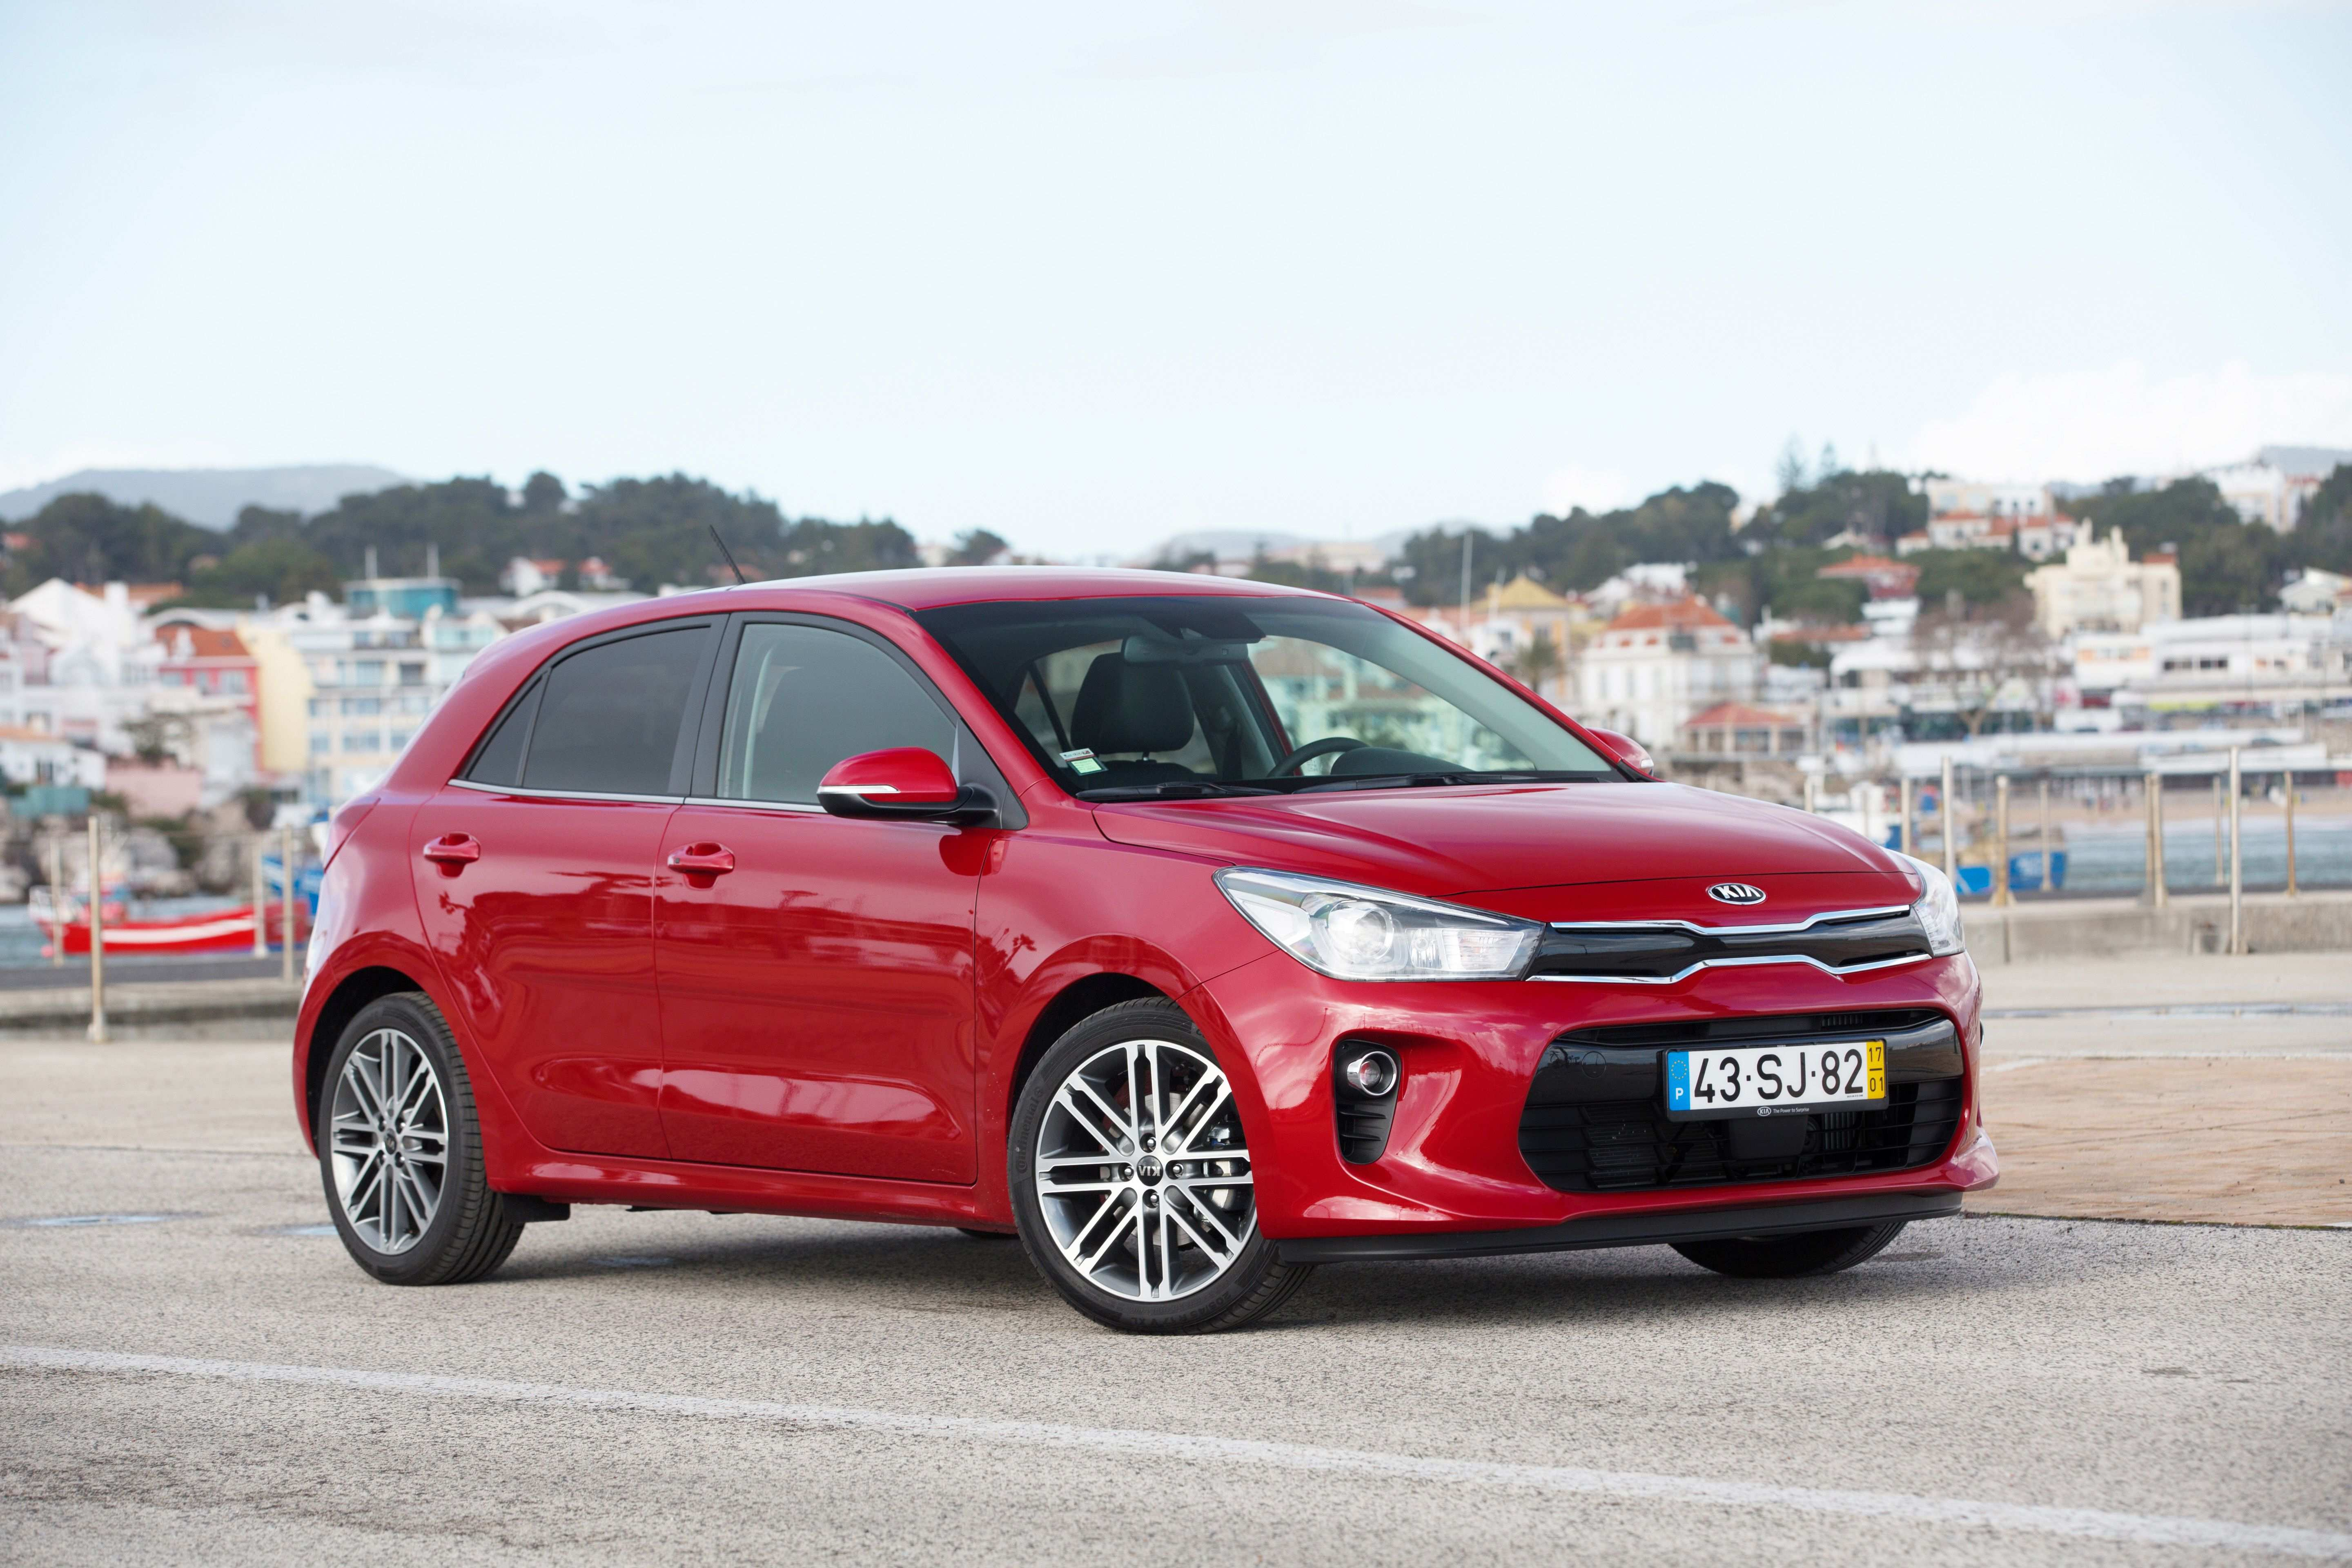 41 All New Kia Rio Lx 2020 Release for Kia Rio Lx 2020